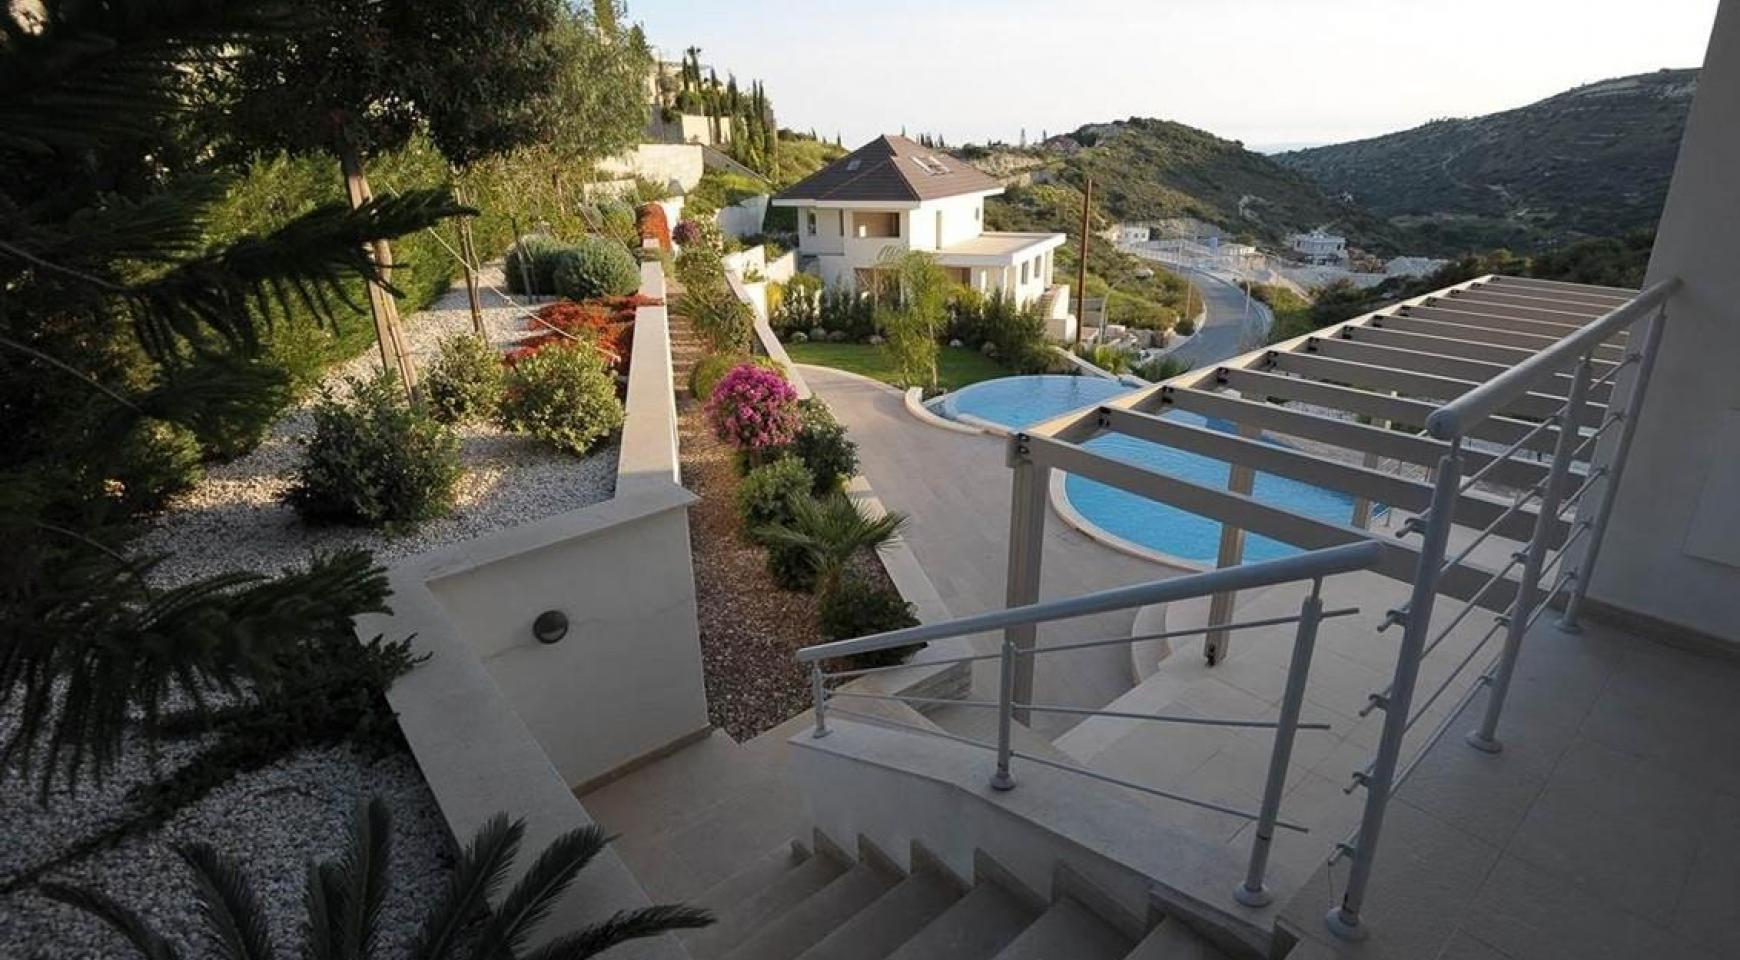 New Luxurious 5 Bedroom Villa with Stunning Views in Agios Tychonas - 1